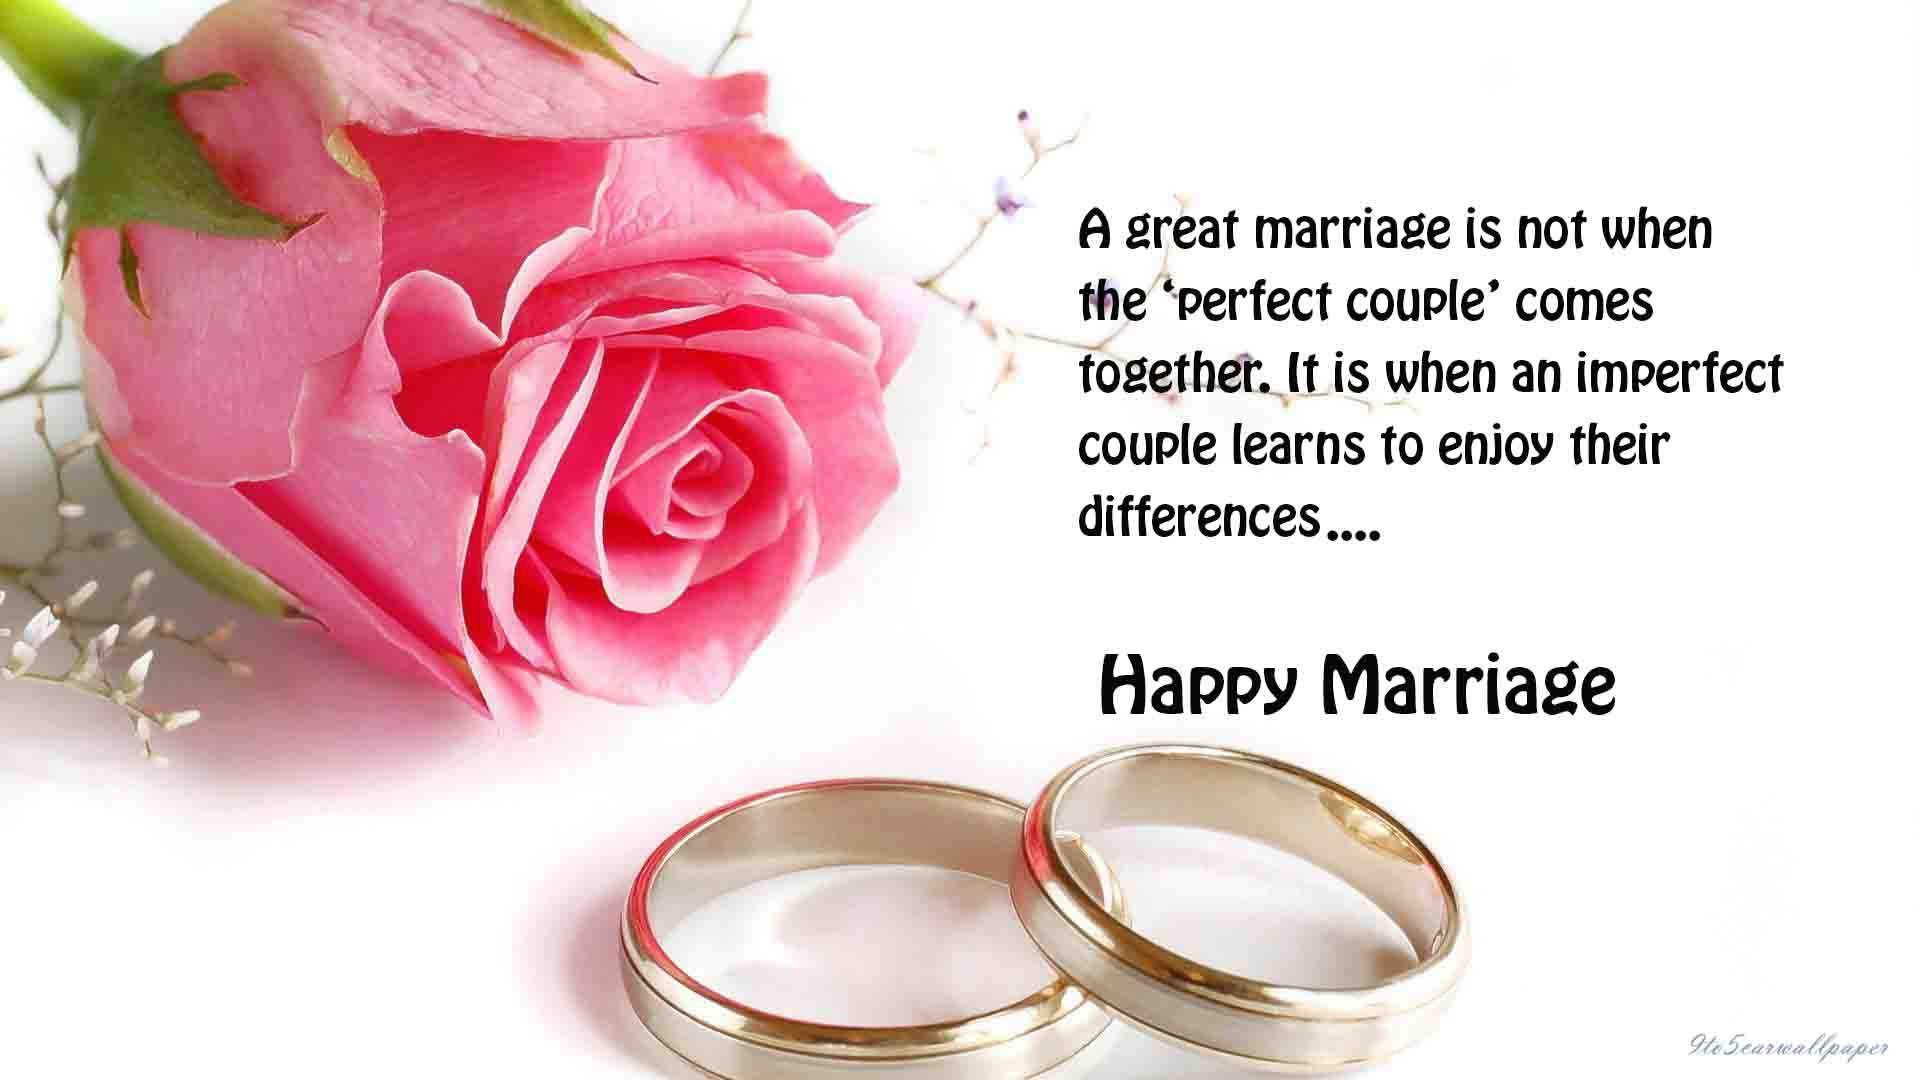 Happy Marriage Quotes Wishes Wallpapers 2017